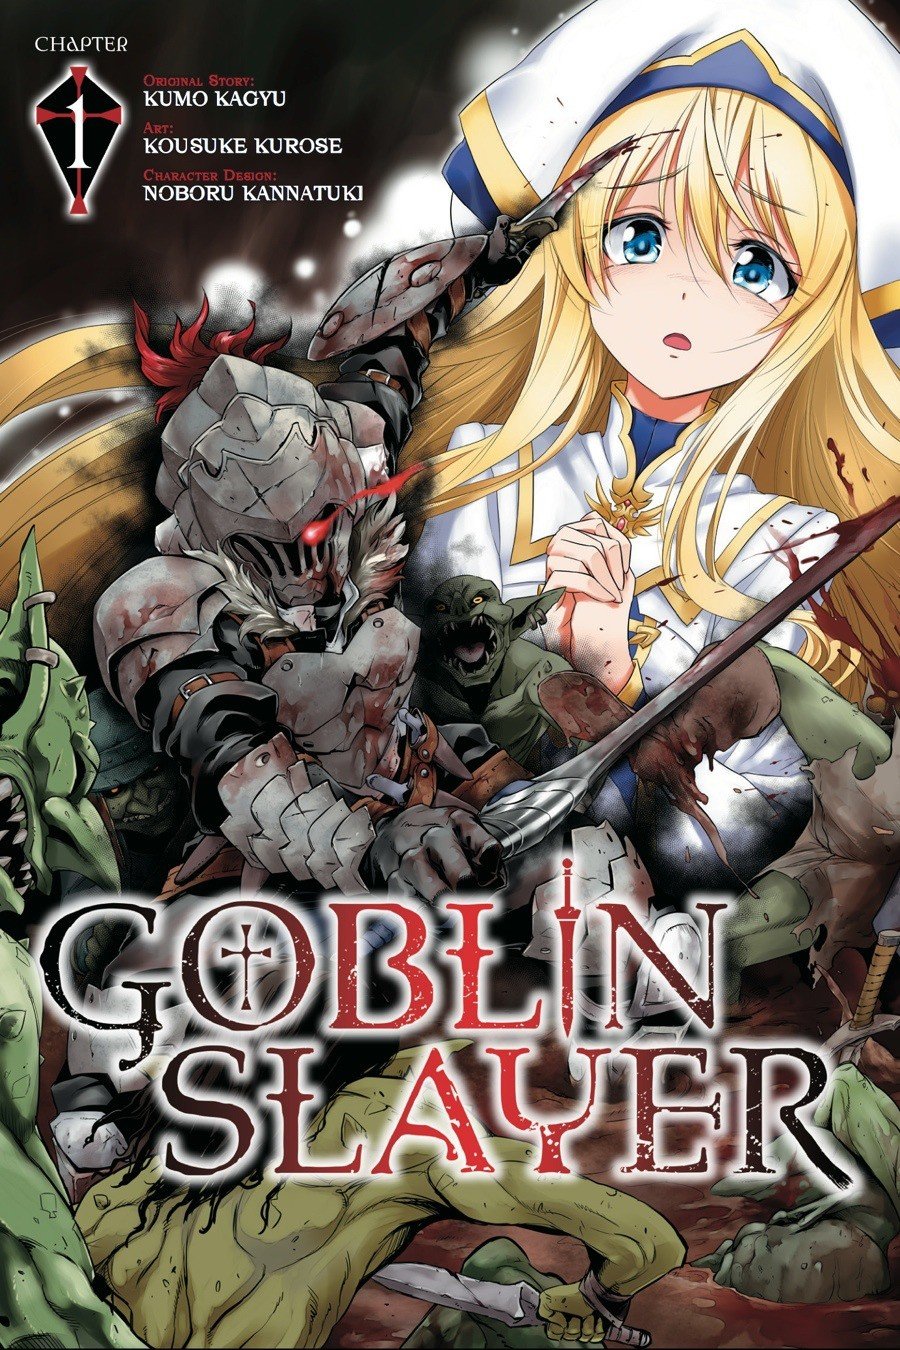 Goblin Slayer Chapter 1 part 1. This was written by Kumo Kagyo from the LN and illustrated by Noboru Kannatsuki, yet this Manga was licenced and published by Sq